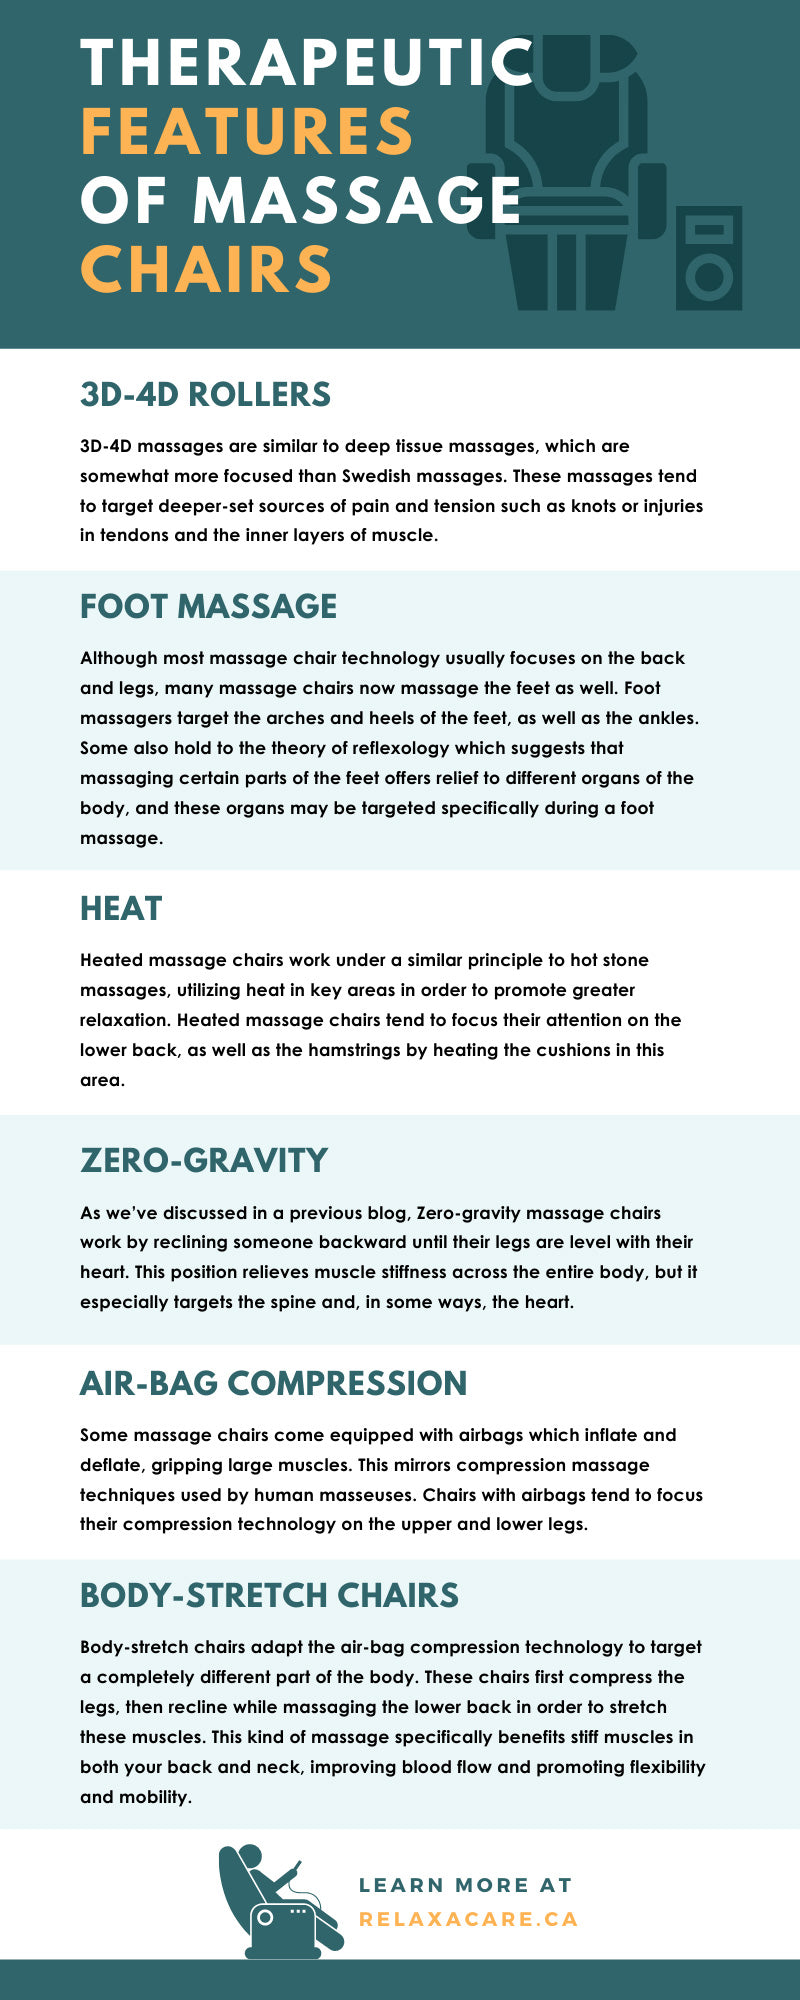 Therapeutic Features of Massage Chairs Infographic